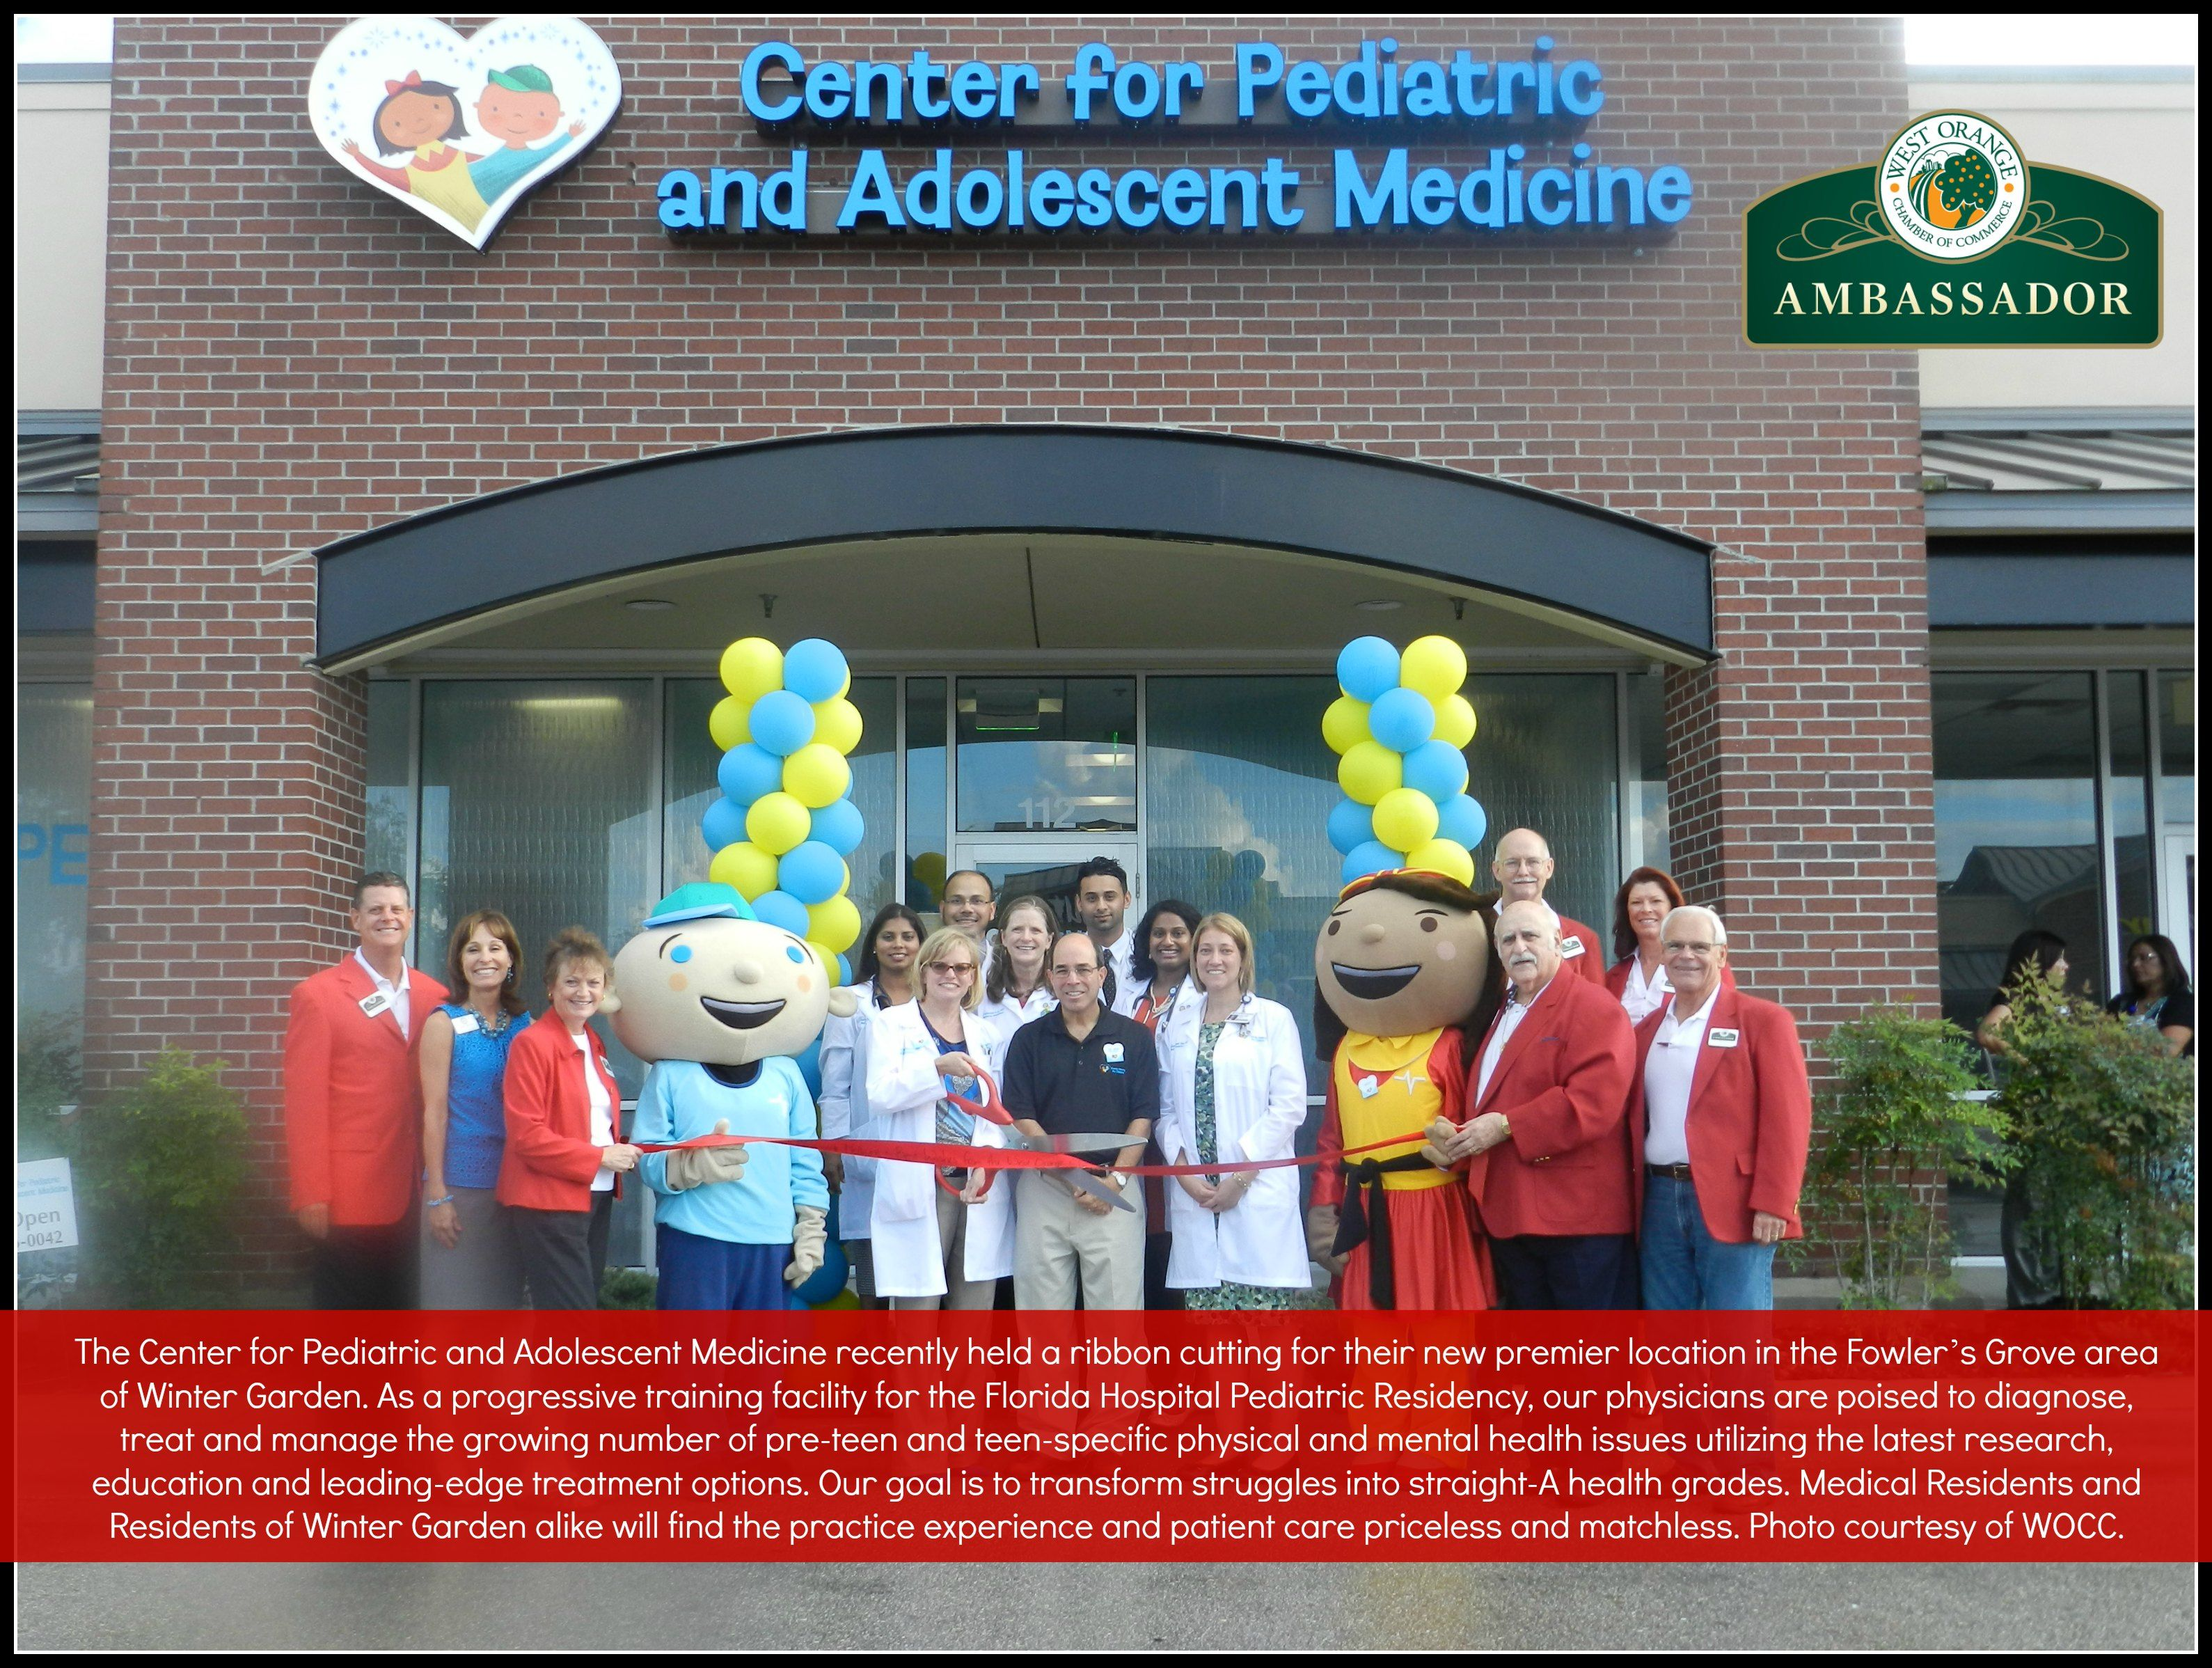 west orange chamber of commerce center for pediatric and